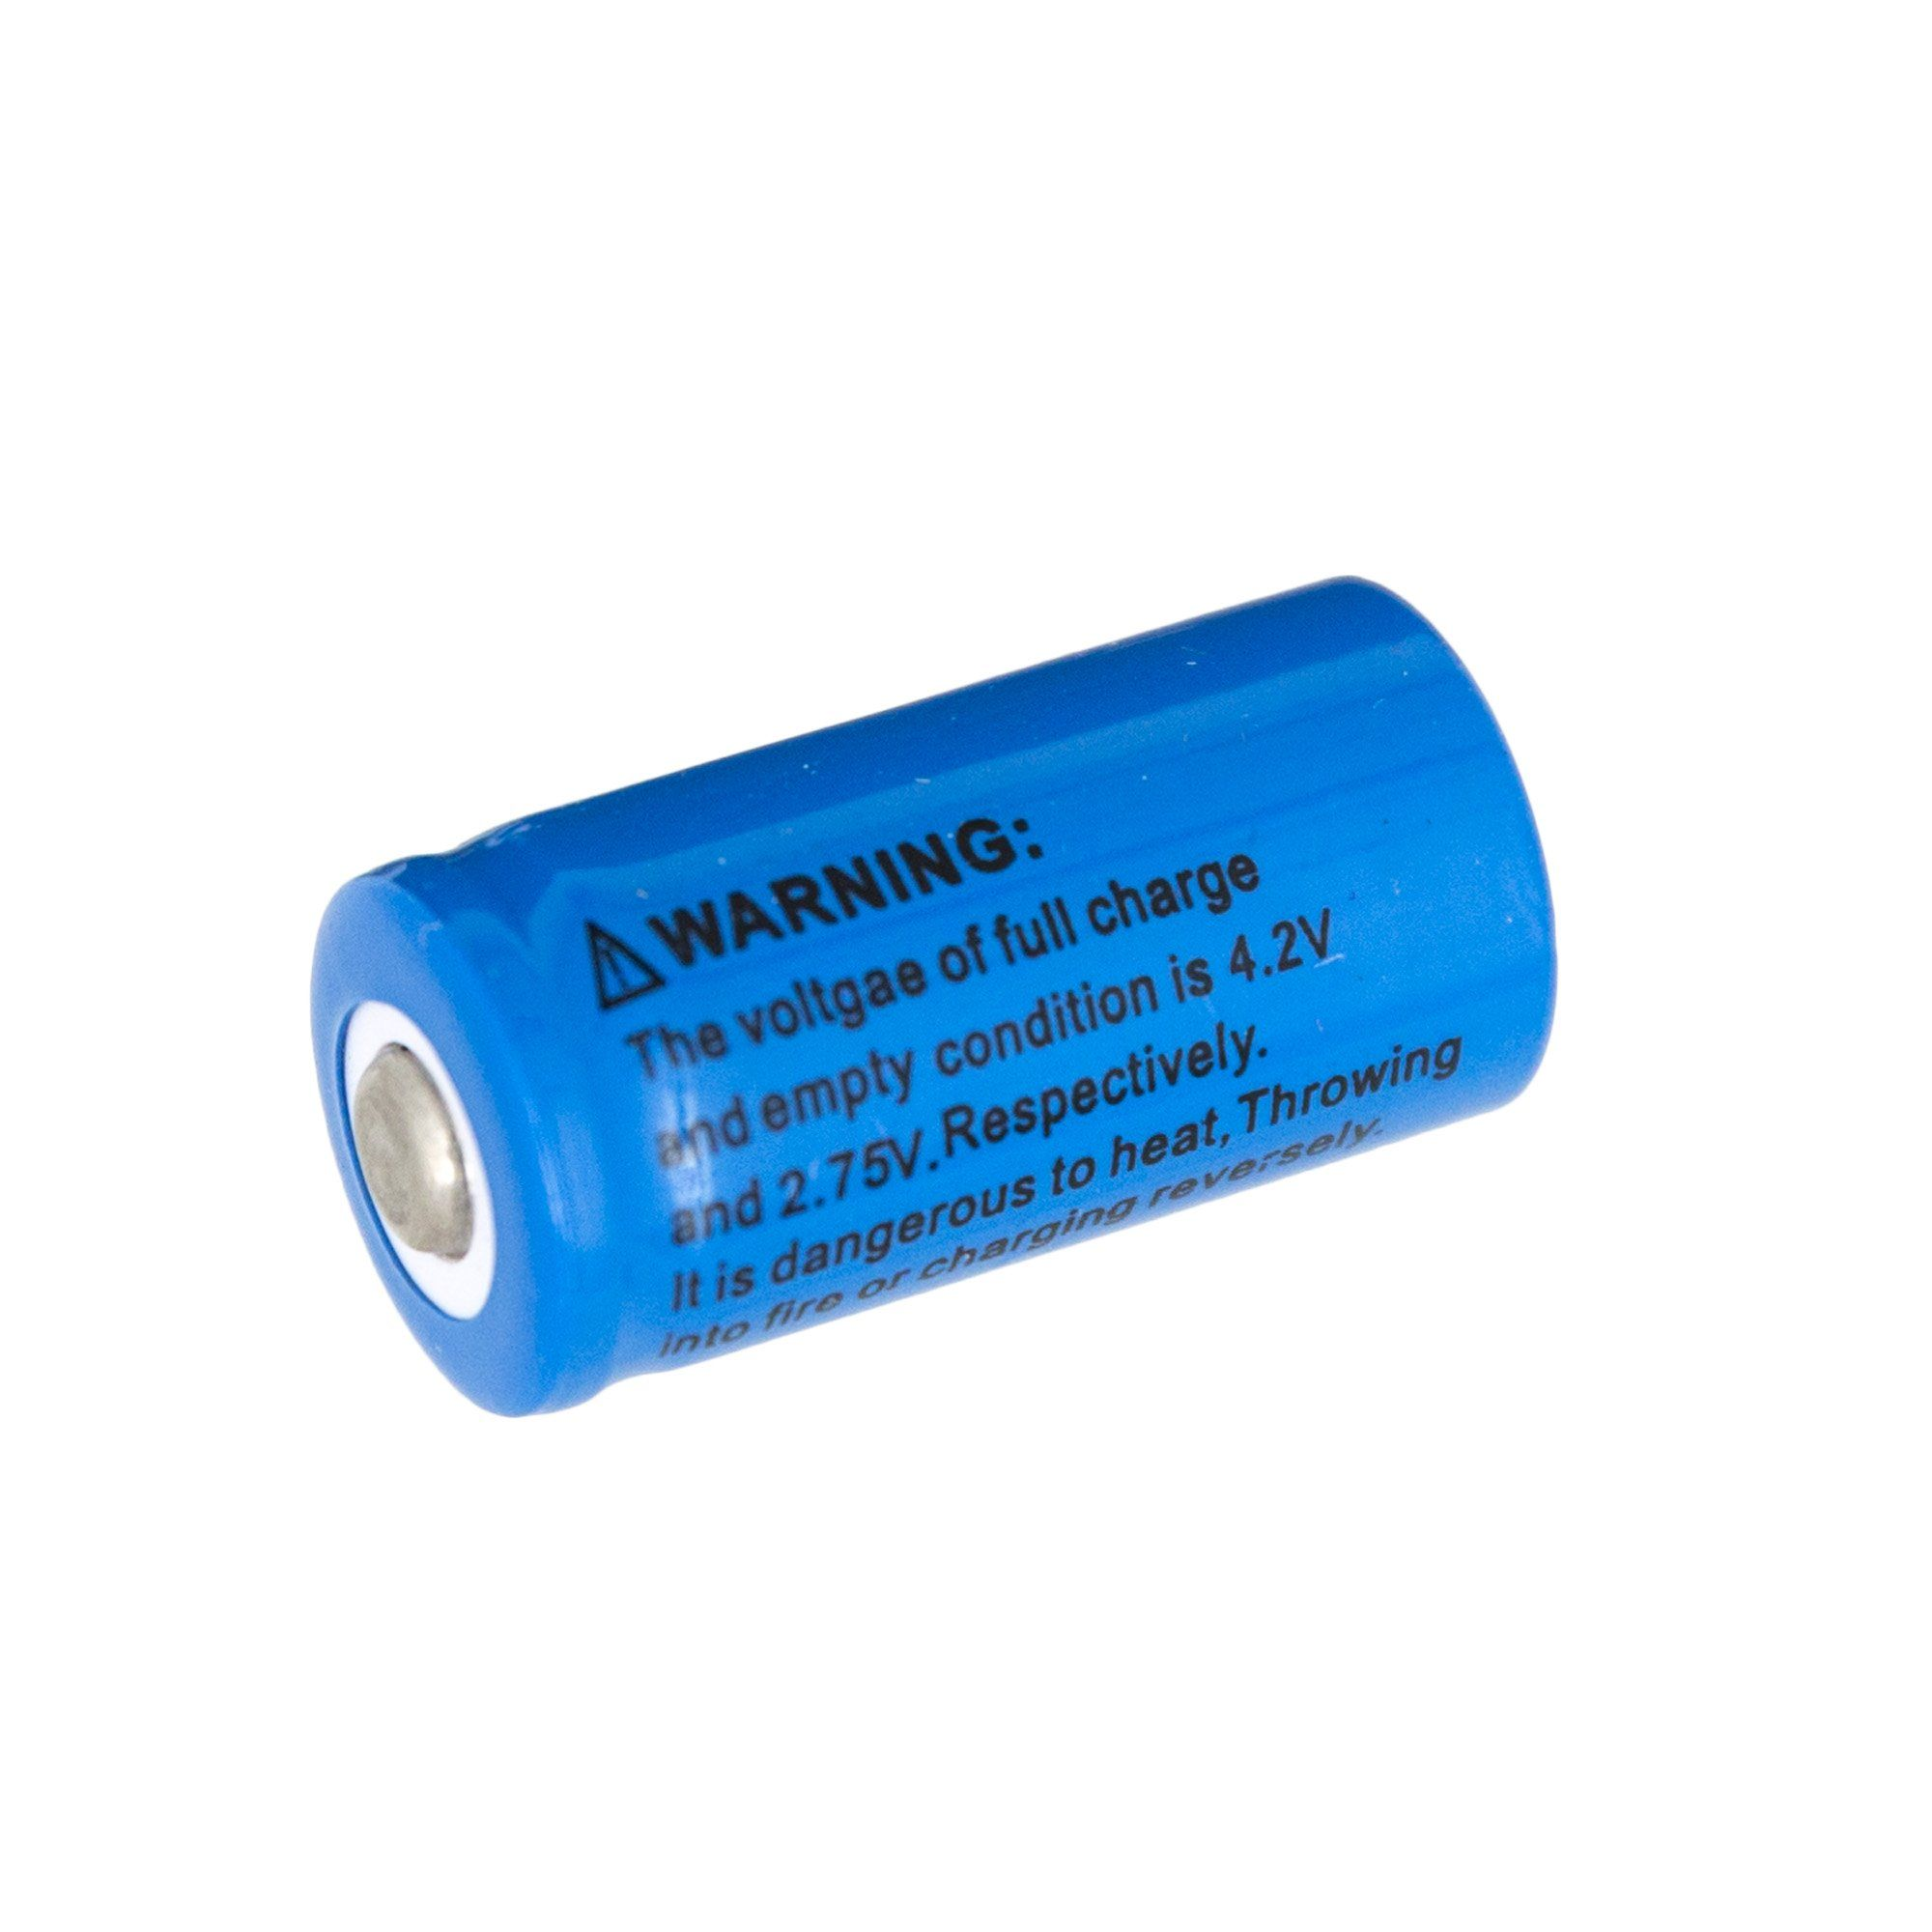 https://www.fin-finder.com/product/cr123a-battery/ $6.99